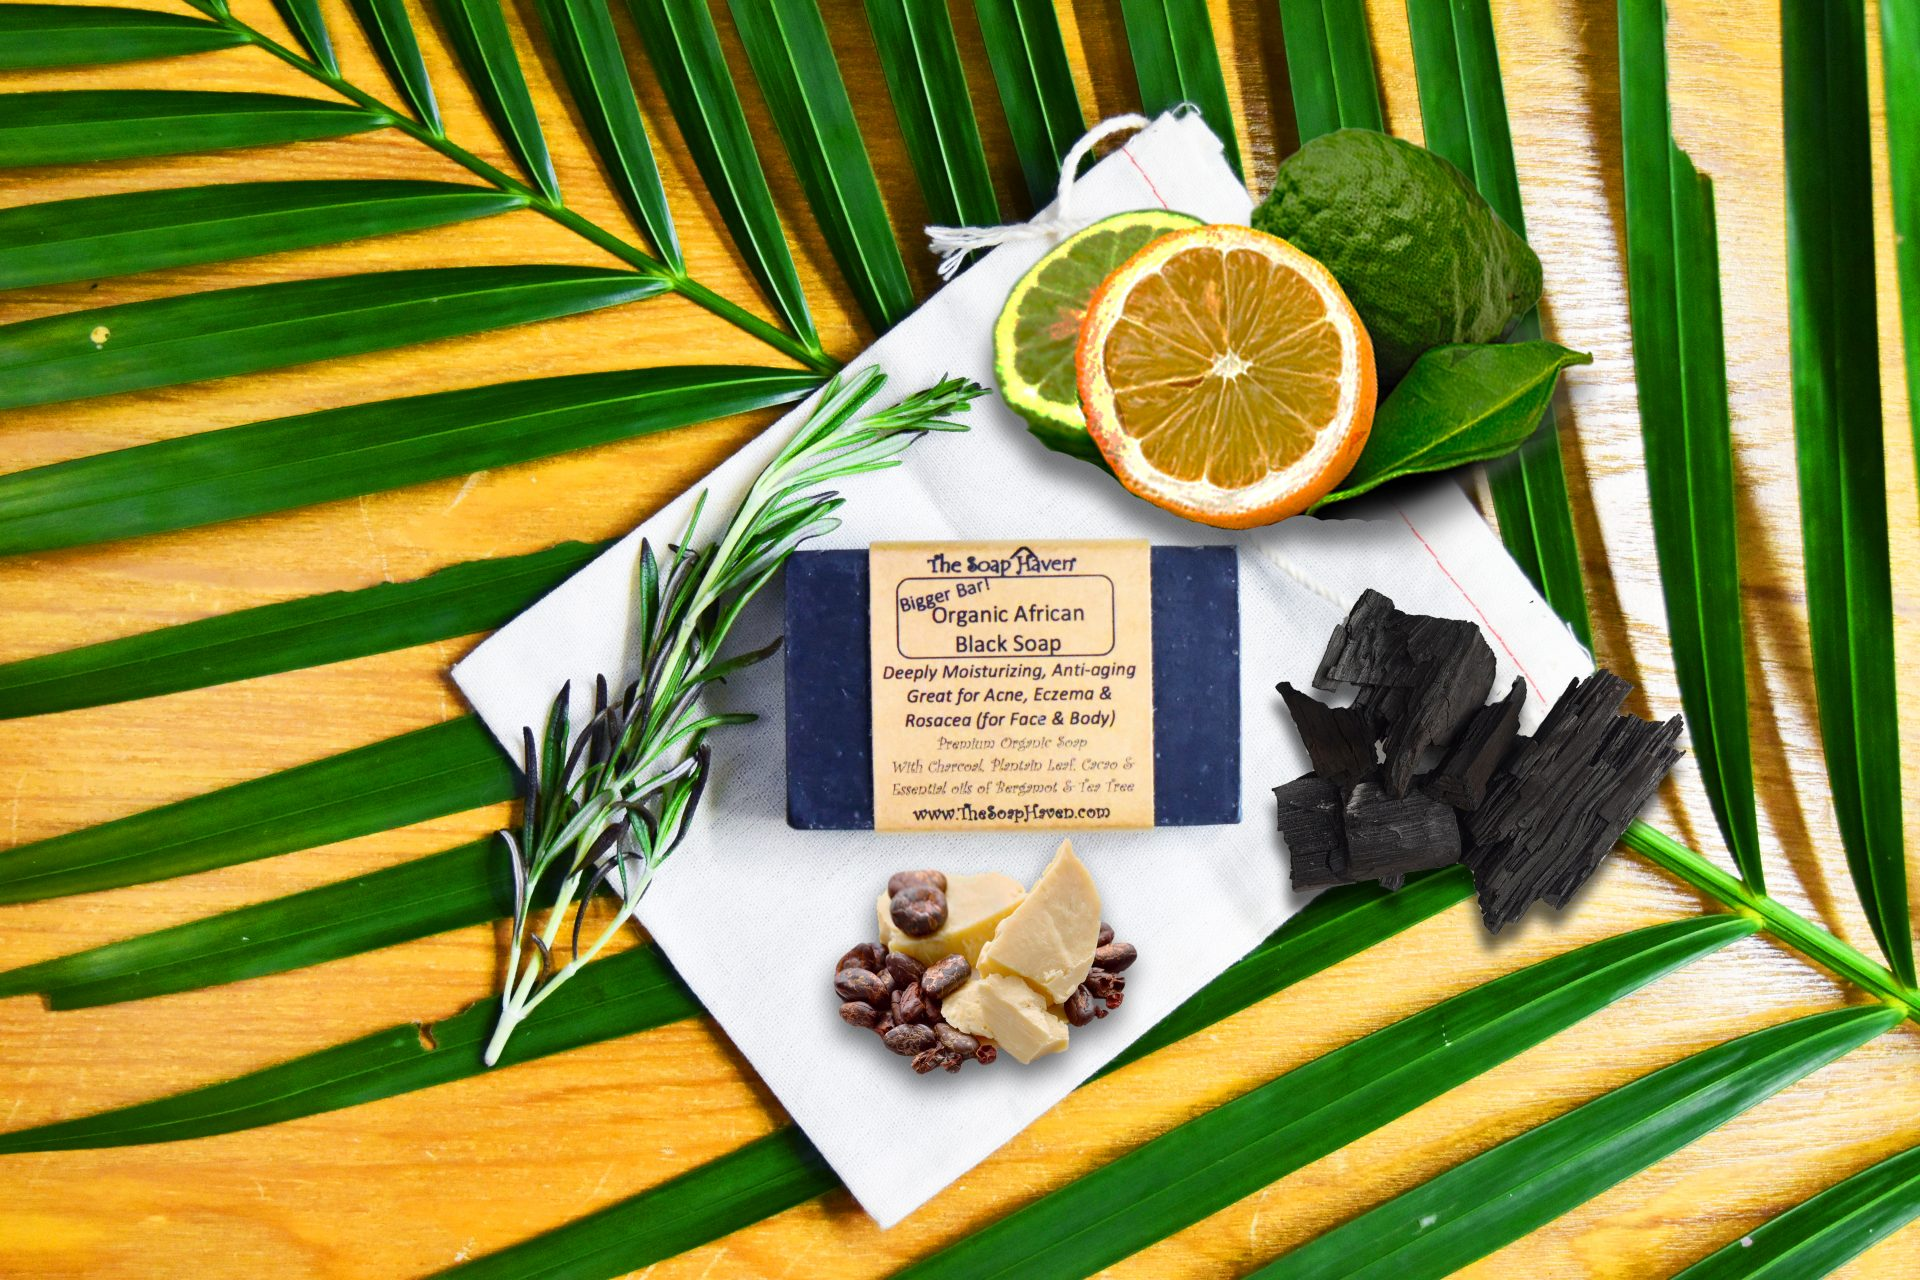 The Soap Haven Organic African Black Soap with ingredients